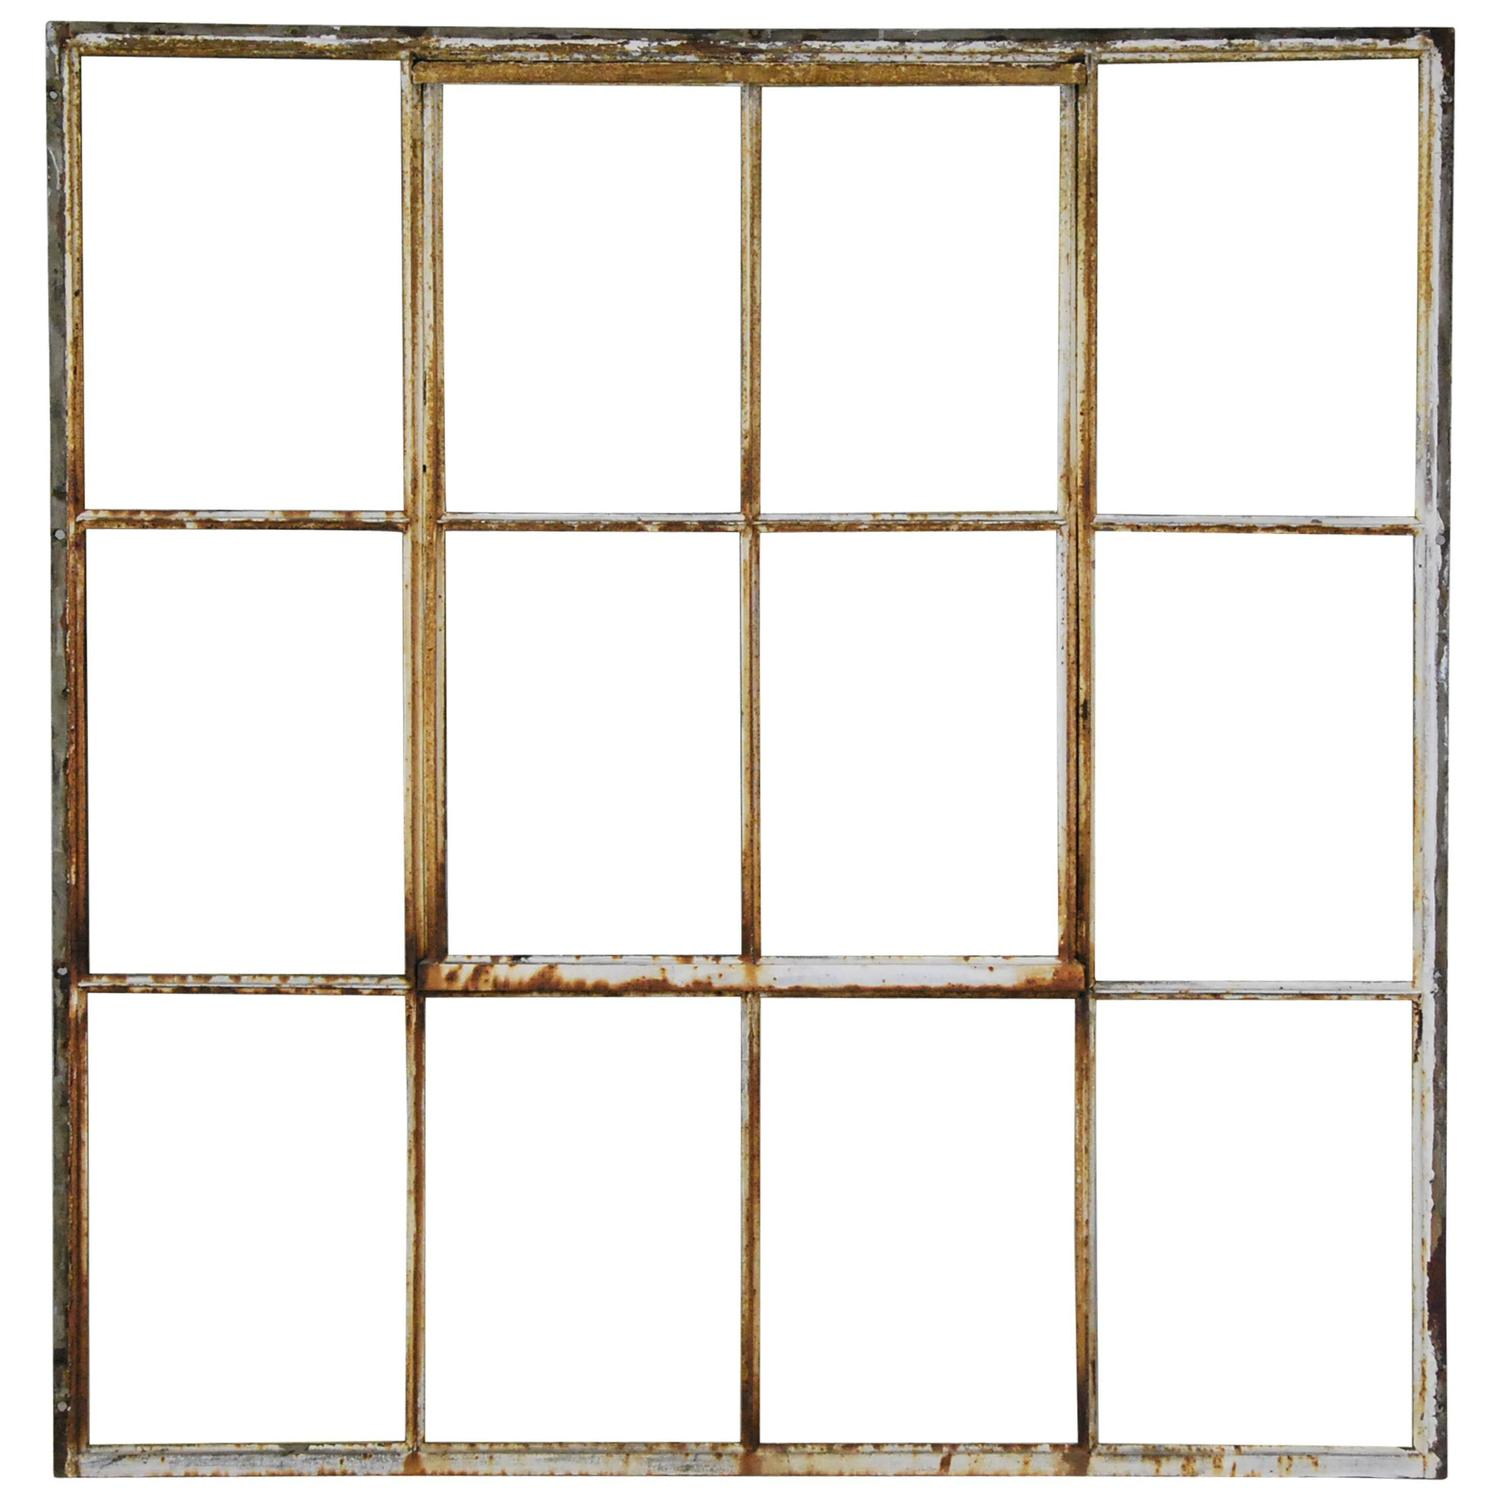 Set of six 1920 steel factory window for sale at 1stdibs for Window factory